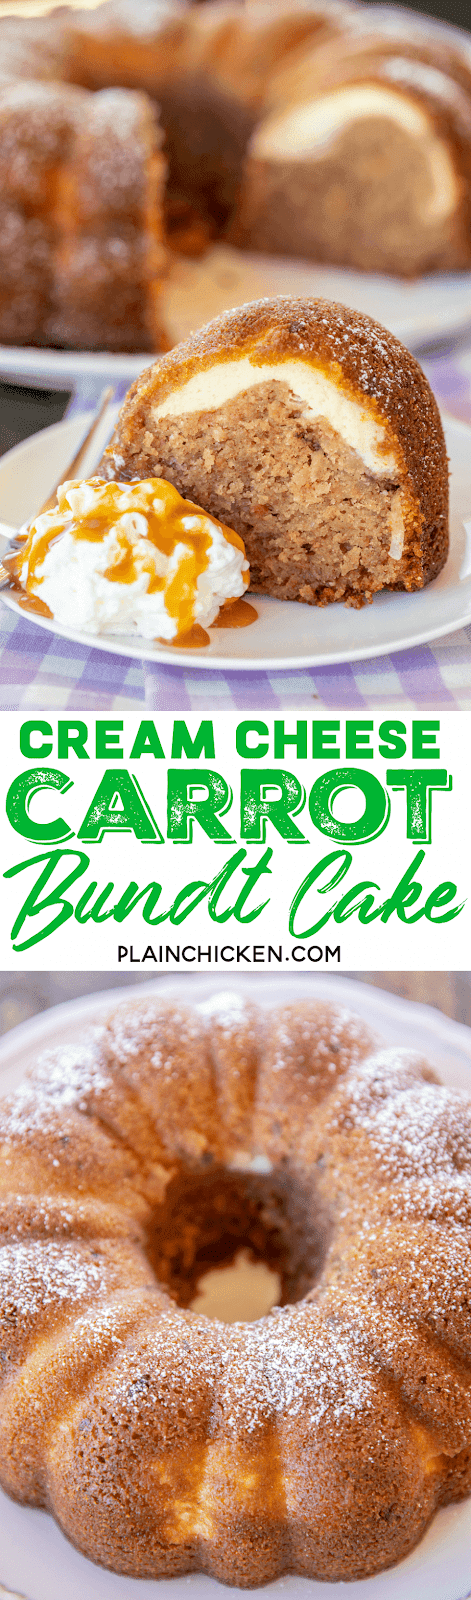 Cream Cheese Carrot Bundt Cake - only a few simple ingredients make this delicious cake. Cake with a can of frosting in the batter. Carrot cake mix, water, oil, eggs, a can of coconut pecan frosting, cream cheese and sugar. I couldn't believe how delicious this cake tasted. Can make a few days in advance and store in an air-tight container. Great for holidays and potlucks! #cake #carrotcake #dessert